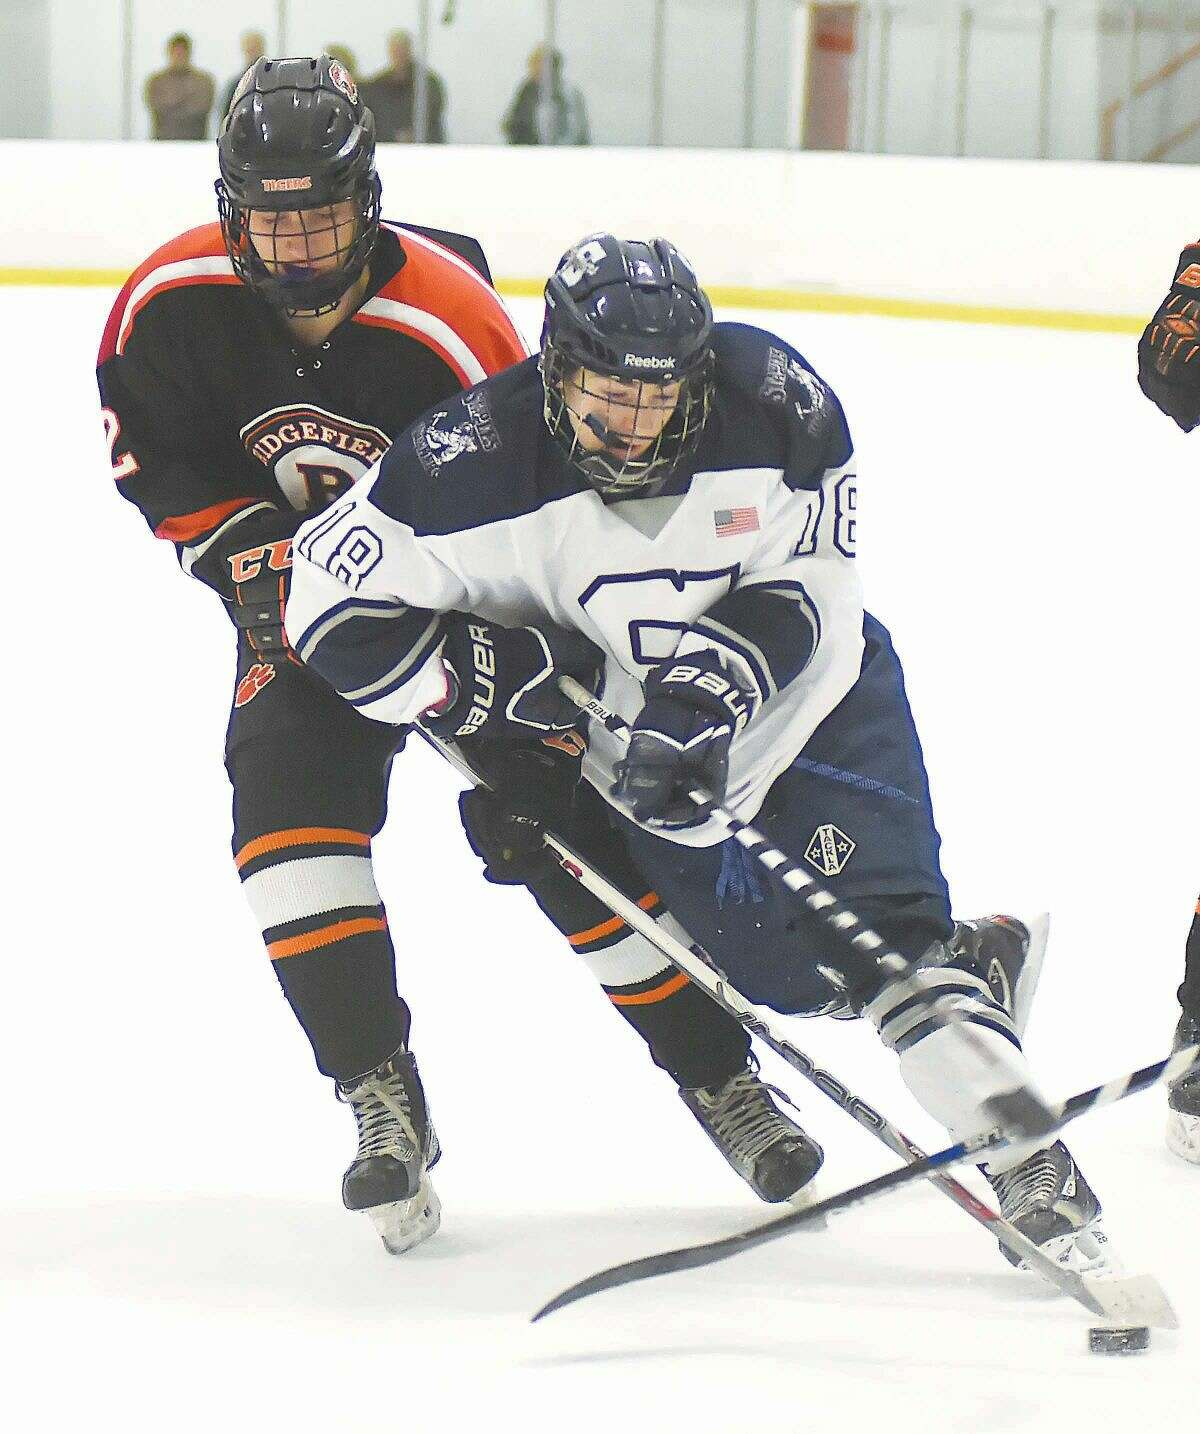 Hour photo/John Nash - Staples-Weston-Shelton co-op skater Ryan Purgay, front, controls the puck in front of a Ridgefield player during Monday's hockey game at the Milford Ice Pavilion.